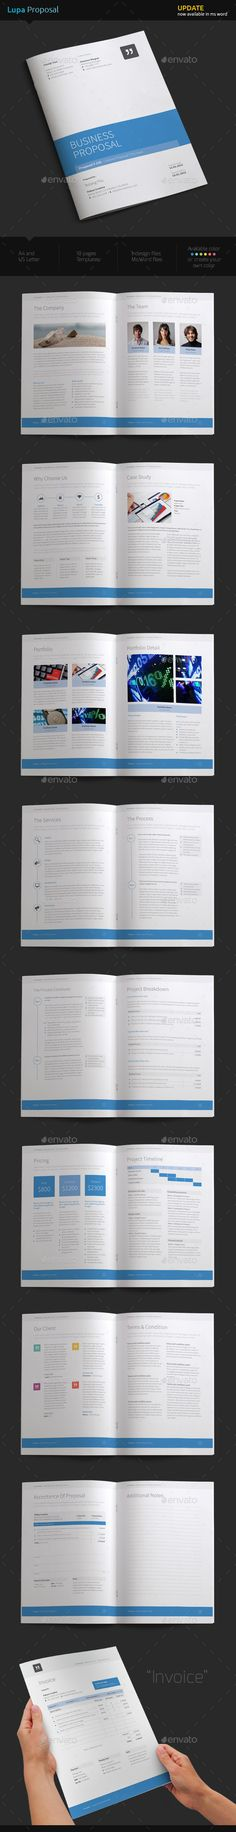 Proposal Proposal templates, Proposals and Project proposal - free event proposal template download